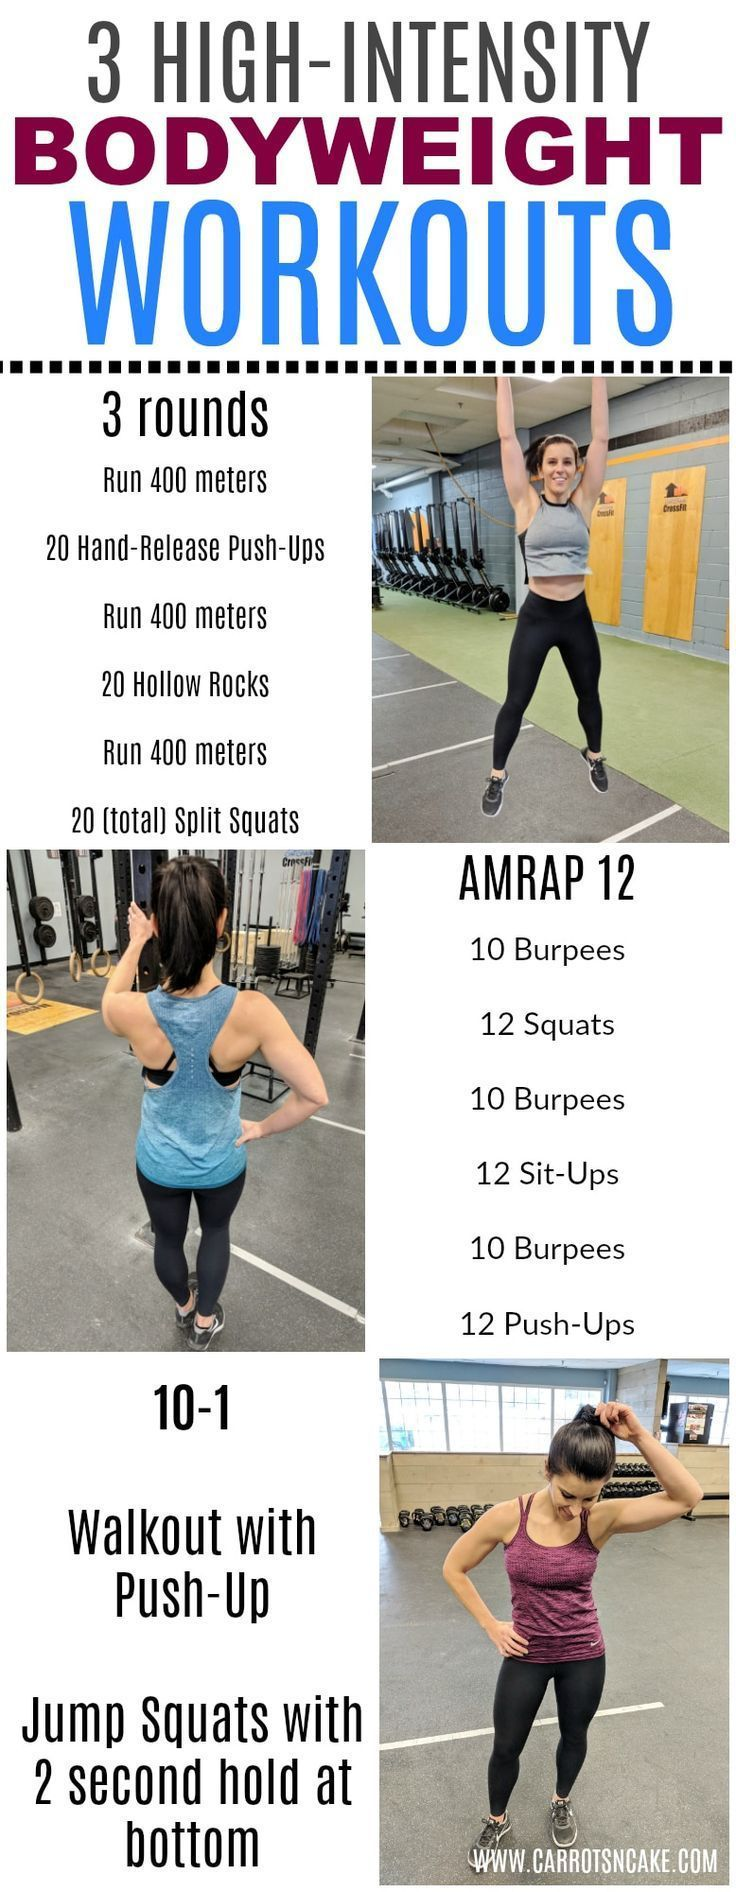 3 High-Intensity, Bodyweight Workouts for 2018 https://carrotsncake.com/2018/01/3-high-intensity-bodyweight-workouts-2018.html